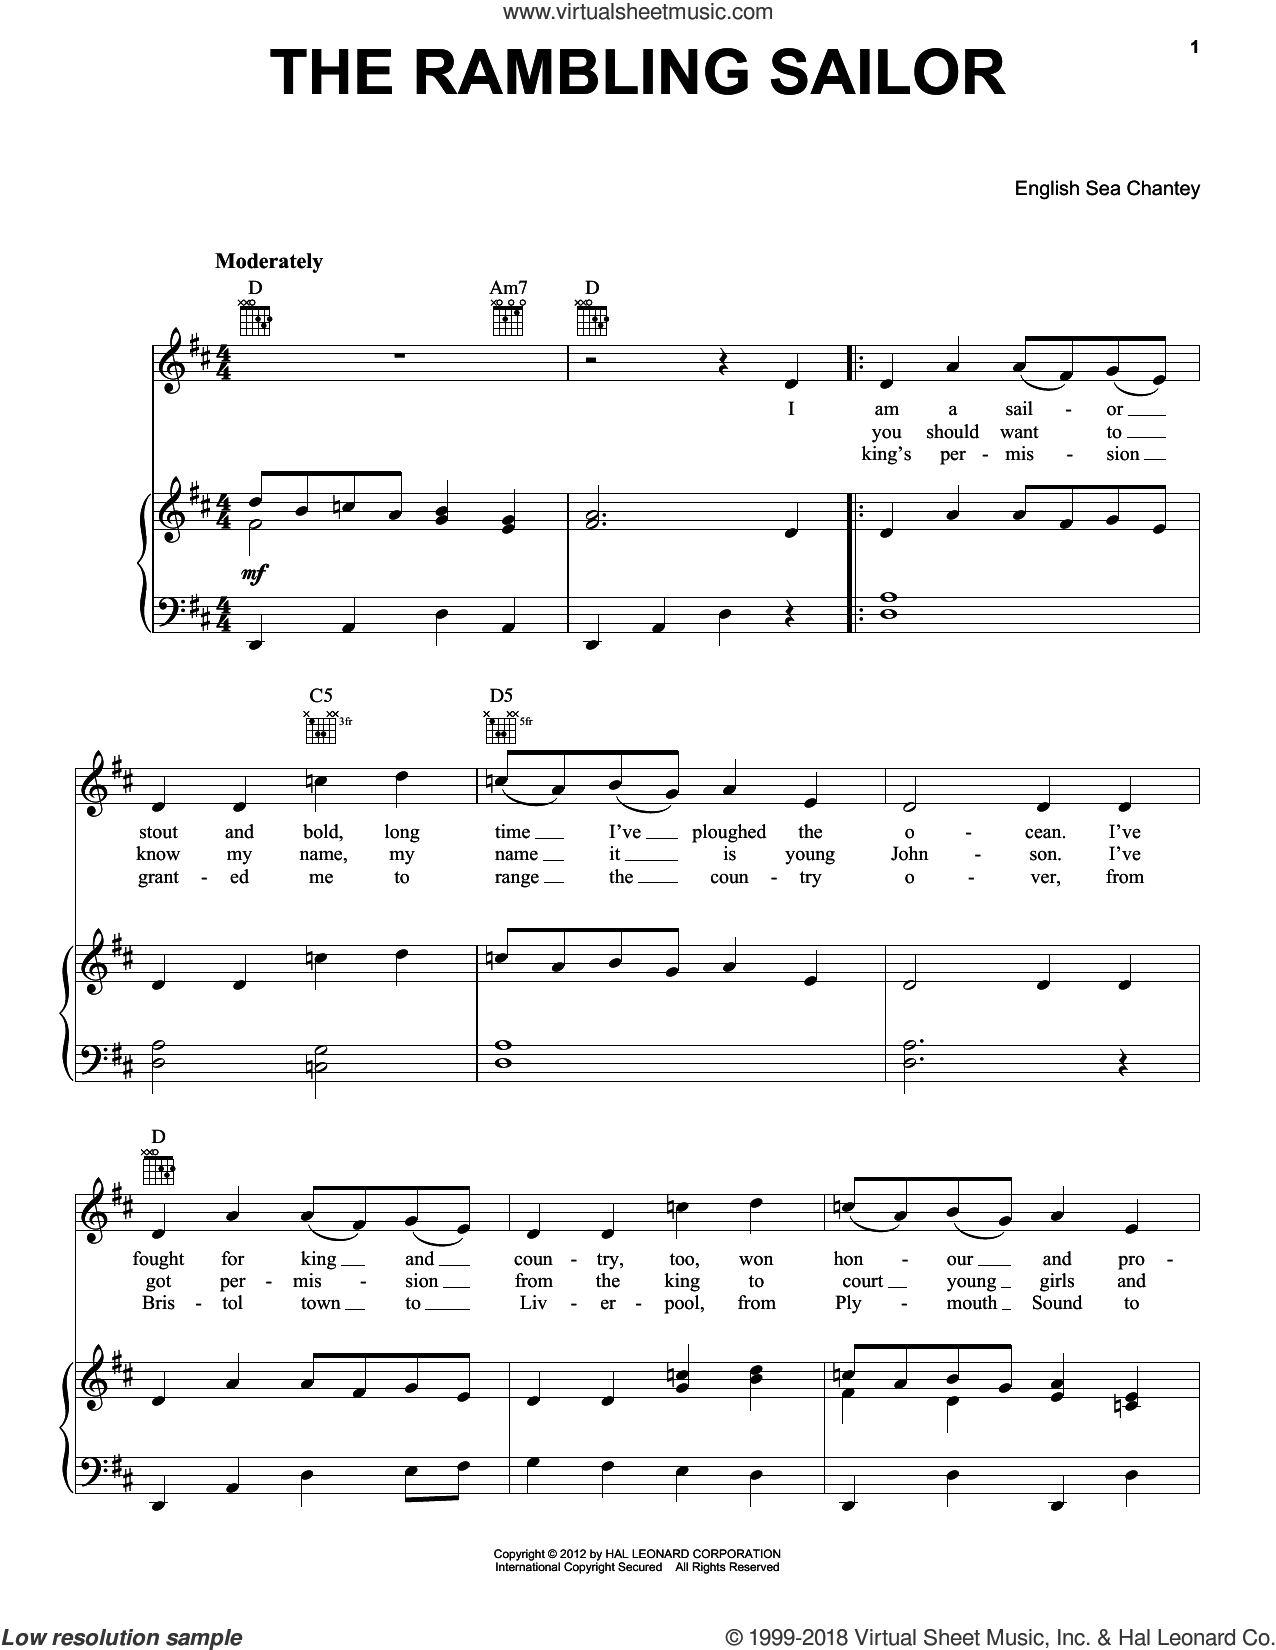 The Rambling Sailor sheet music for voice, piano or guitar